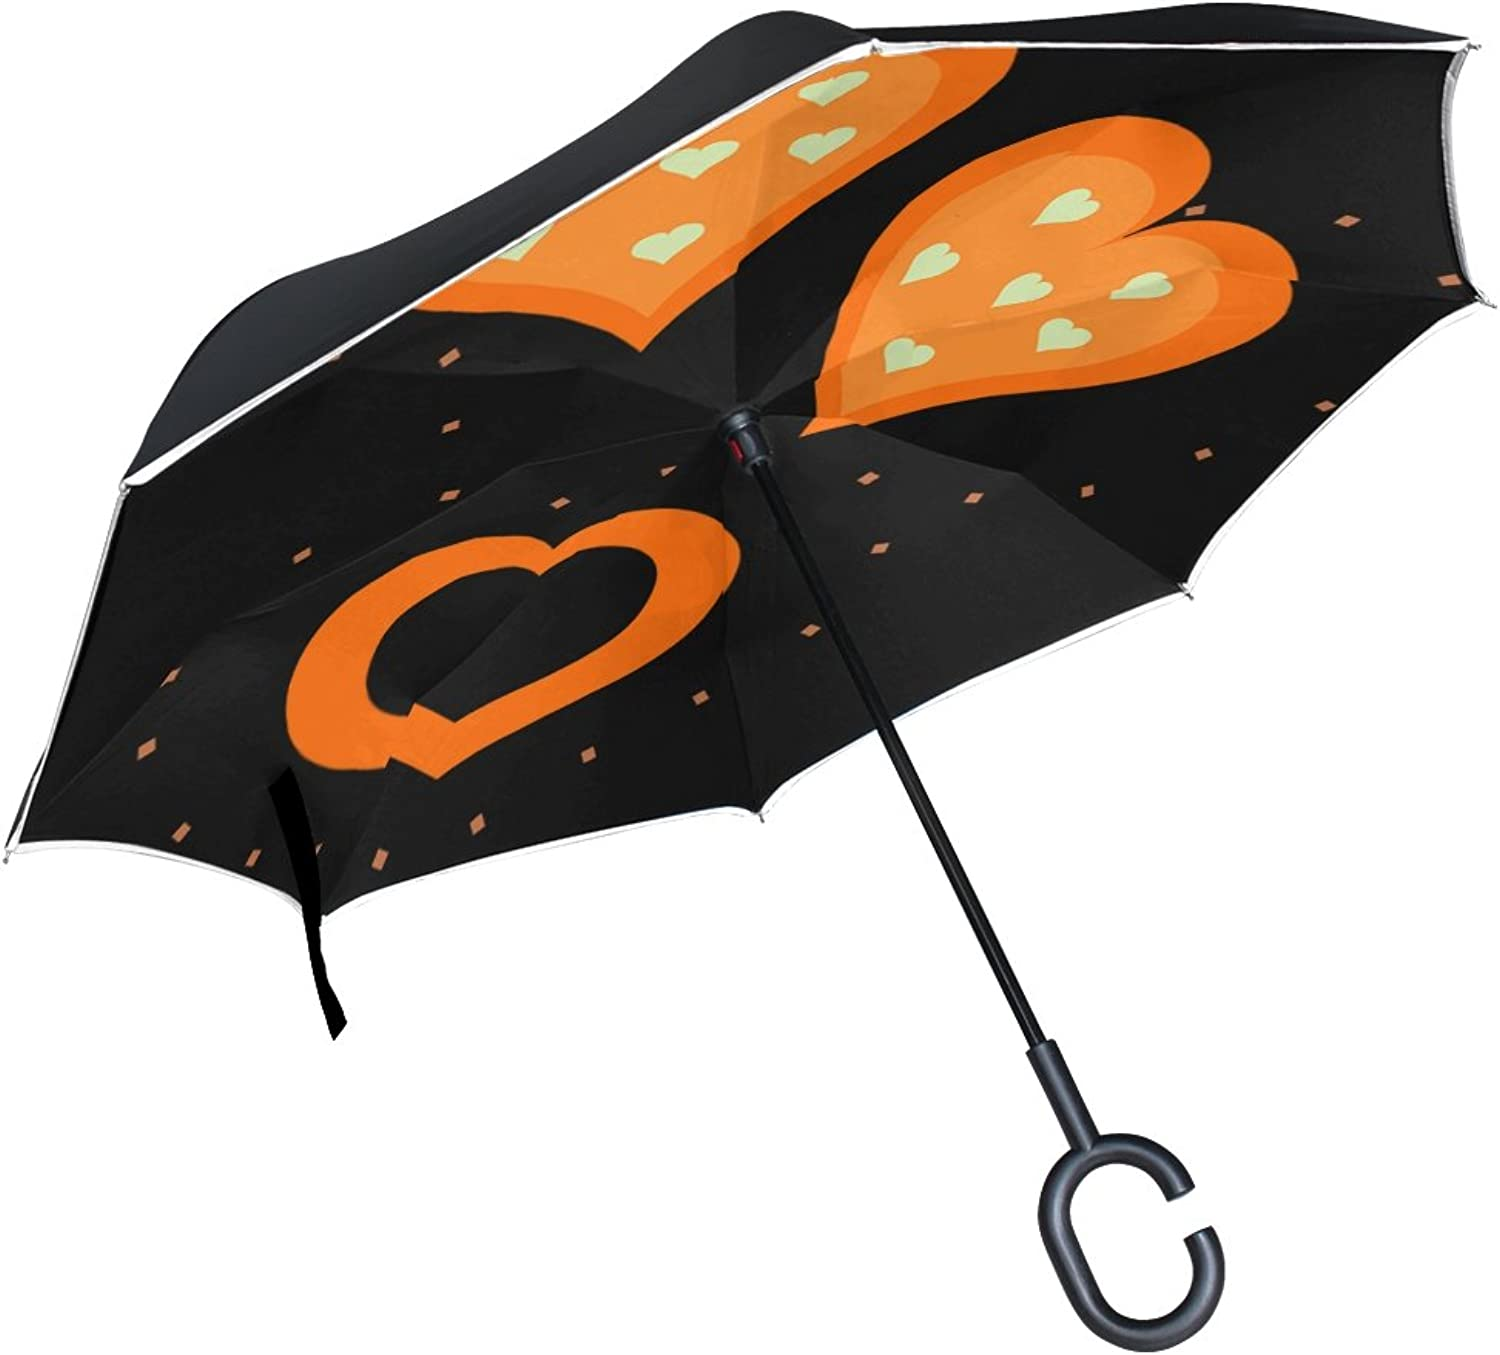 Double Layer Ingreened Hearts Shapes orange Three Sets Group colorful Umbrellas Reverse Folding Umbrella Windproof Uv Predection Big Straight Umbrella for Car Rain Outdoor with CShaped Handle